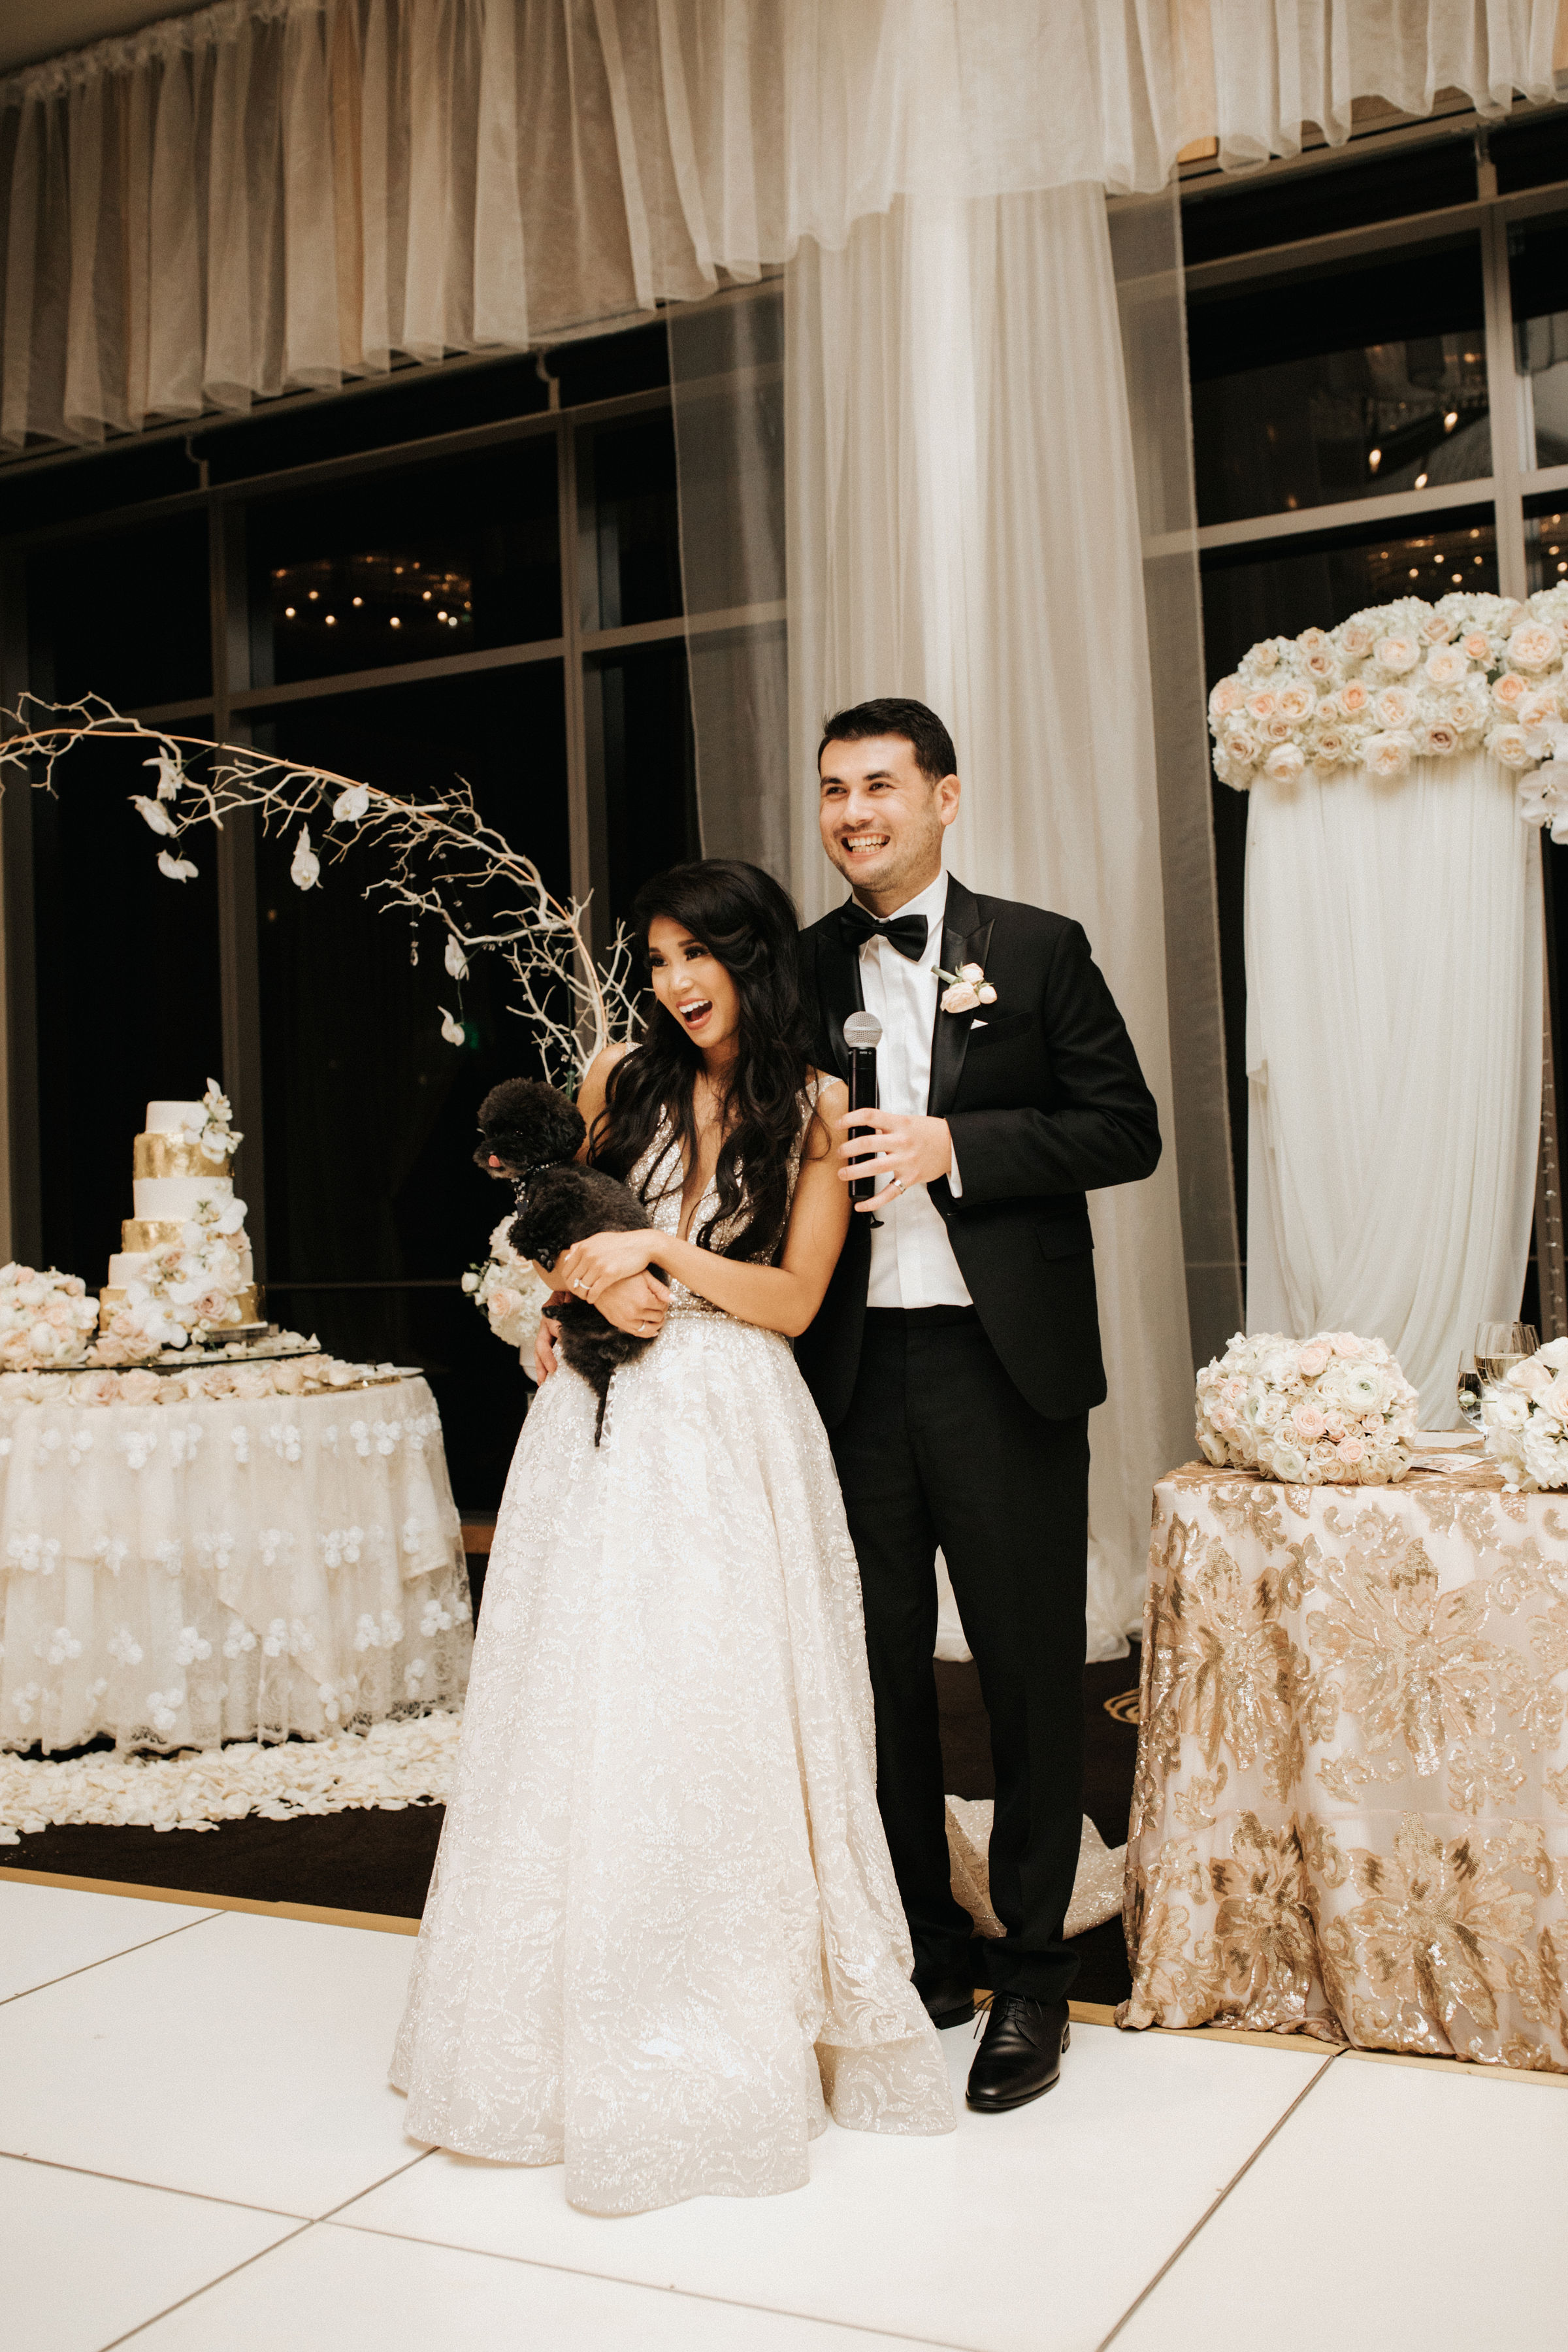 Bridalbliss.com | Seattle Wedding | Washington Event Coordination and Design | Wiley Putnum